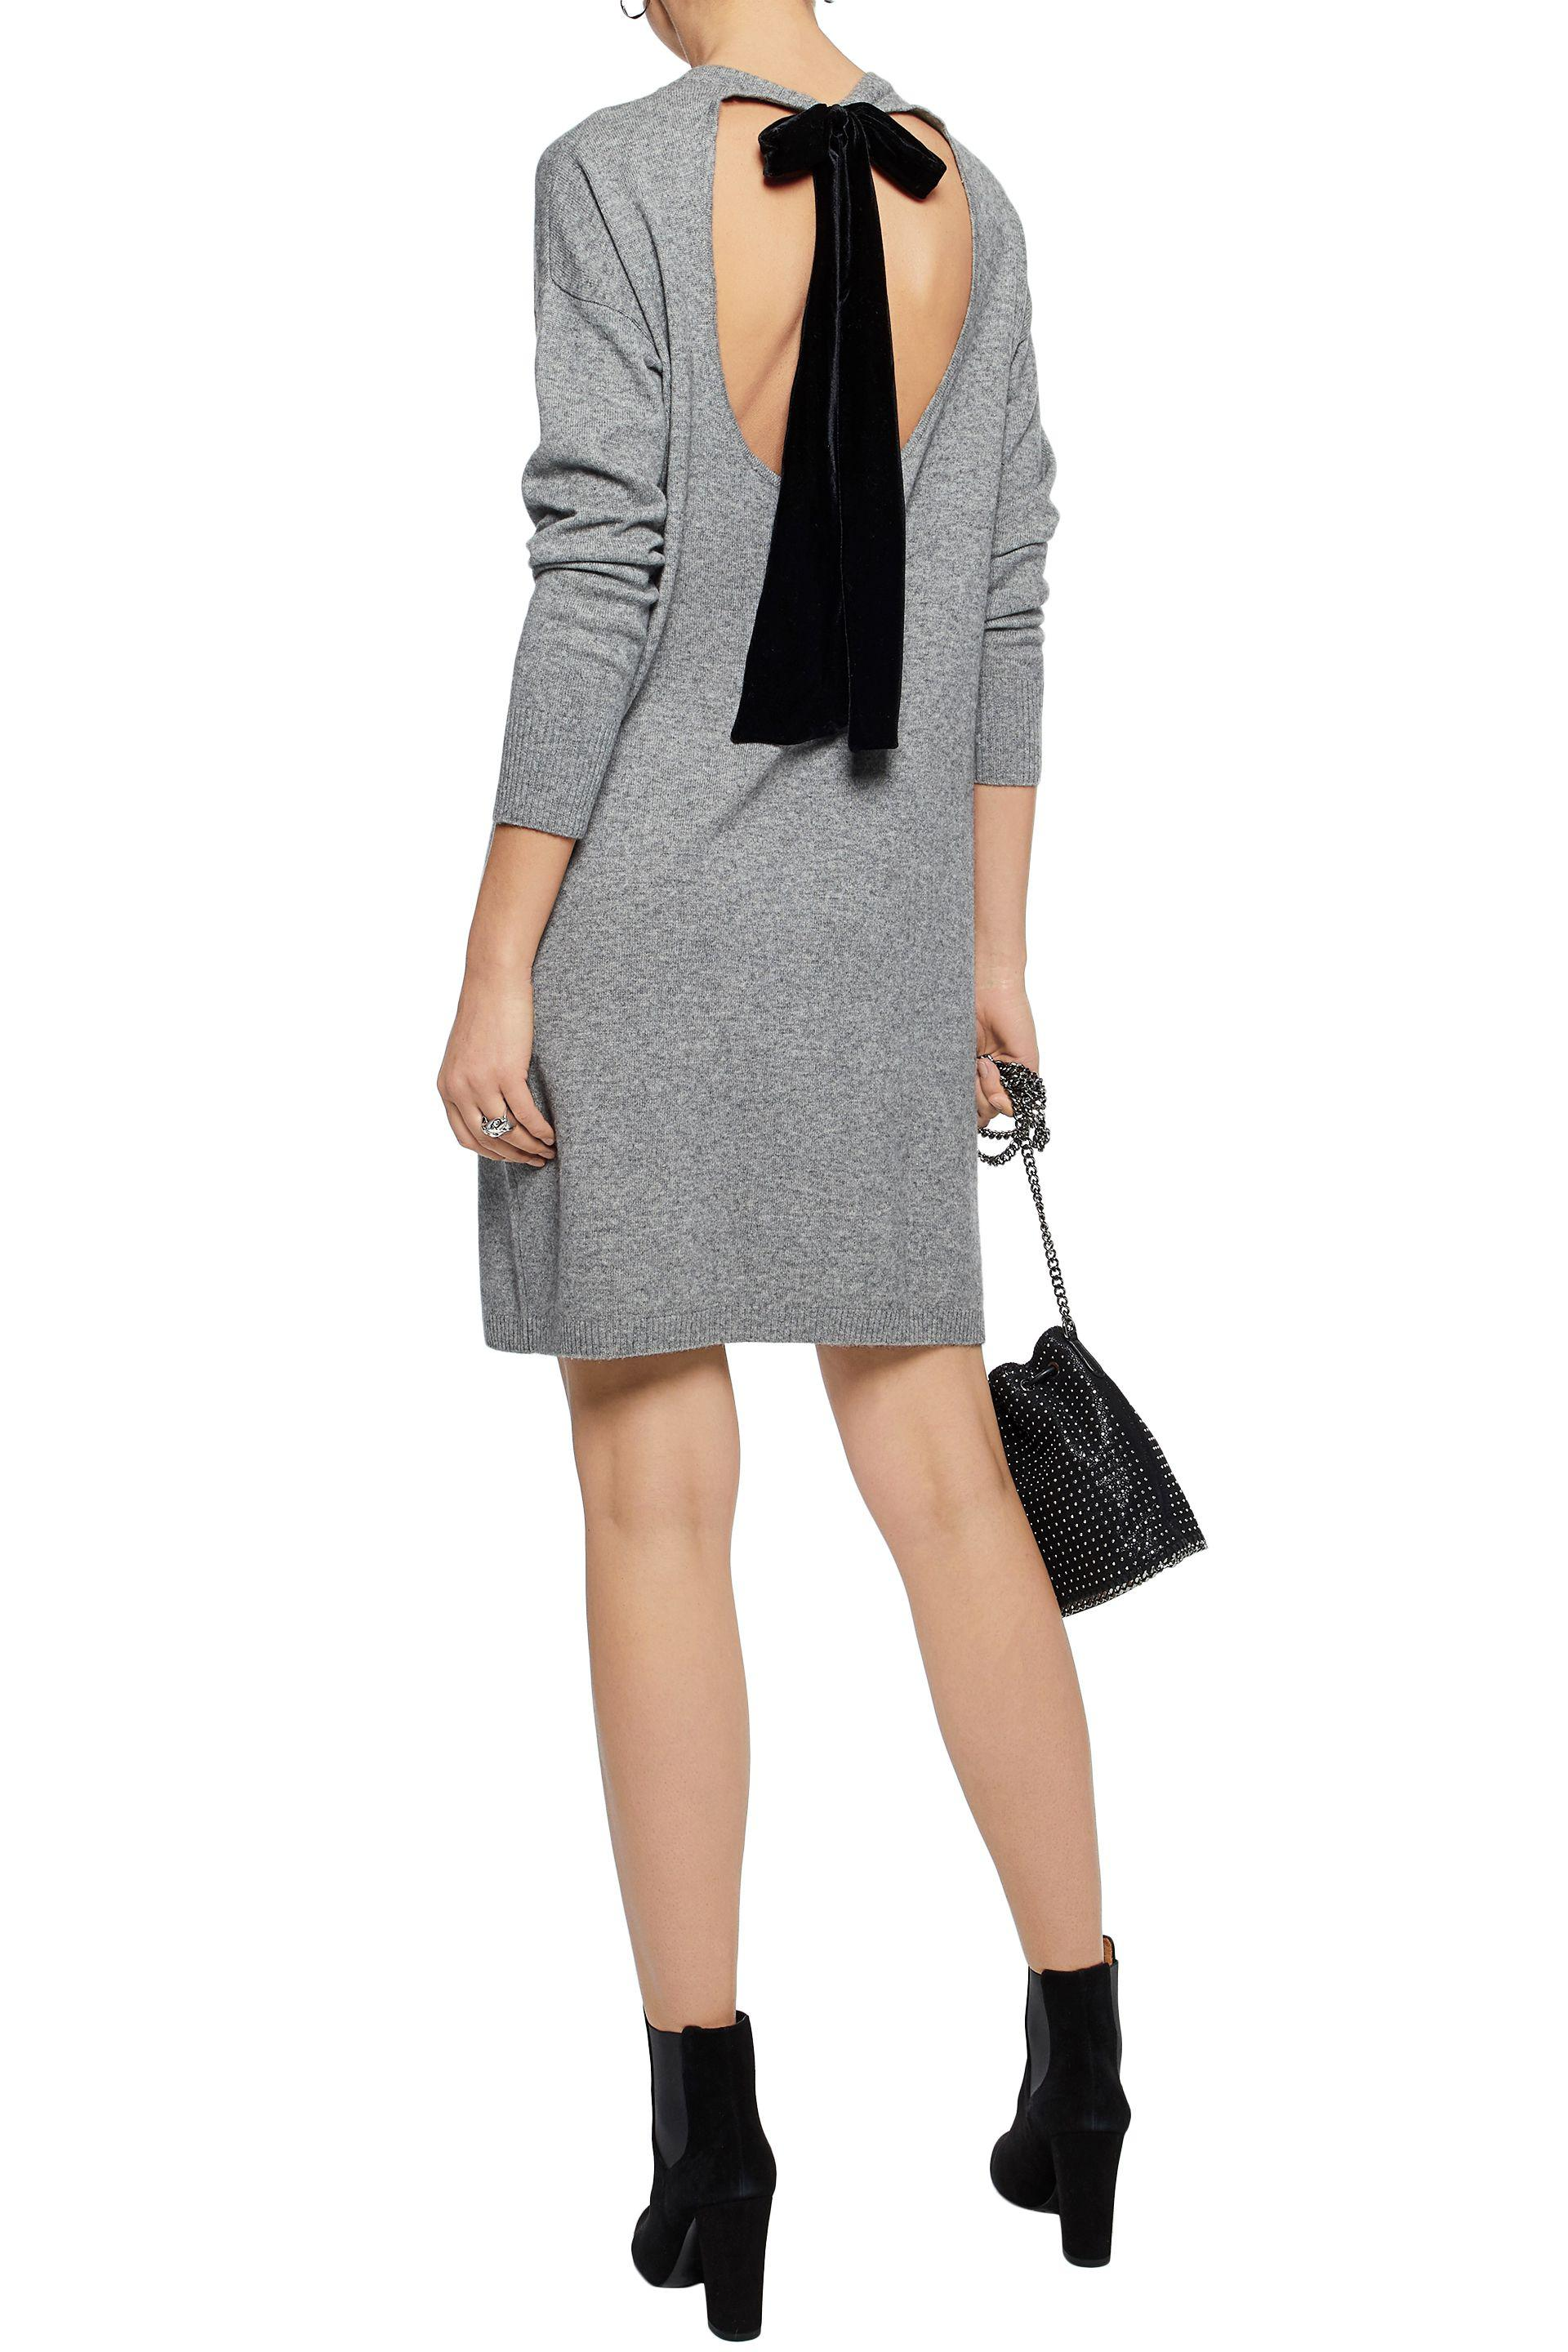 Chinti And Parker Woman Cutout Velvet-trimmed Mélange Wool And Cashmere-blend Mini Dress Gray Size M Chinti and Parker High Quality Buy Online Shop IPXIVXtKEp